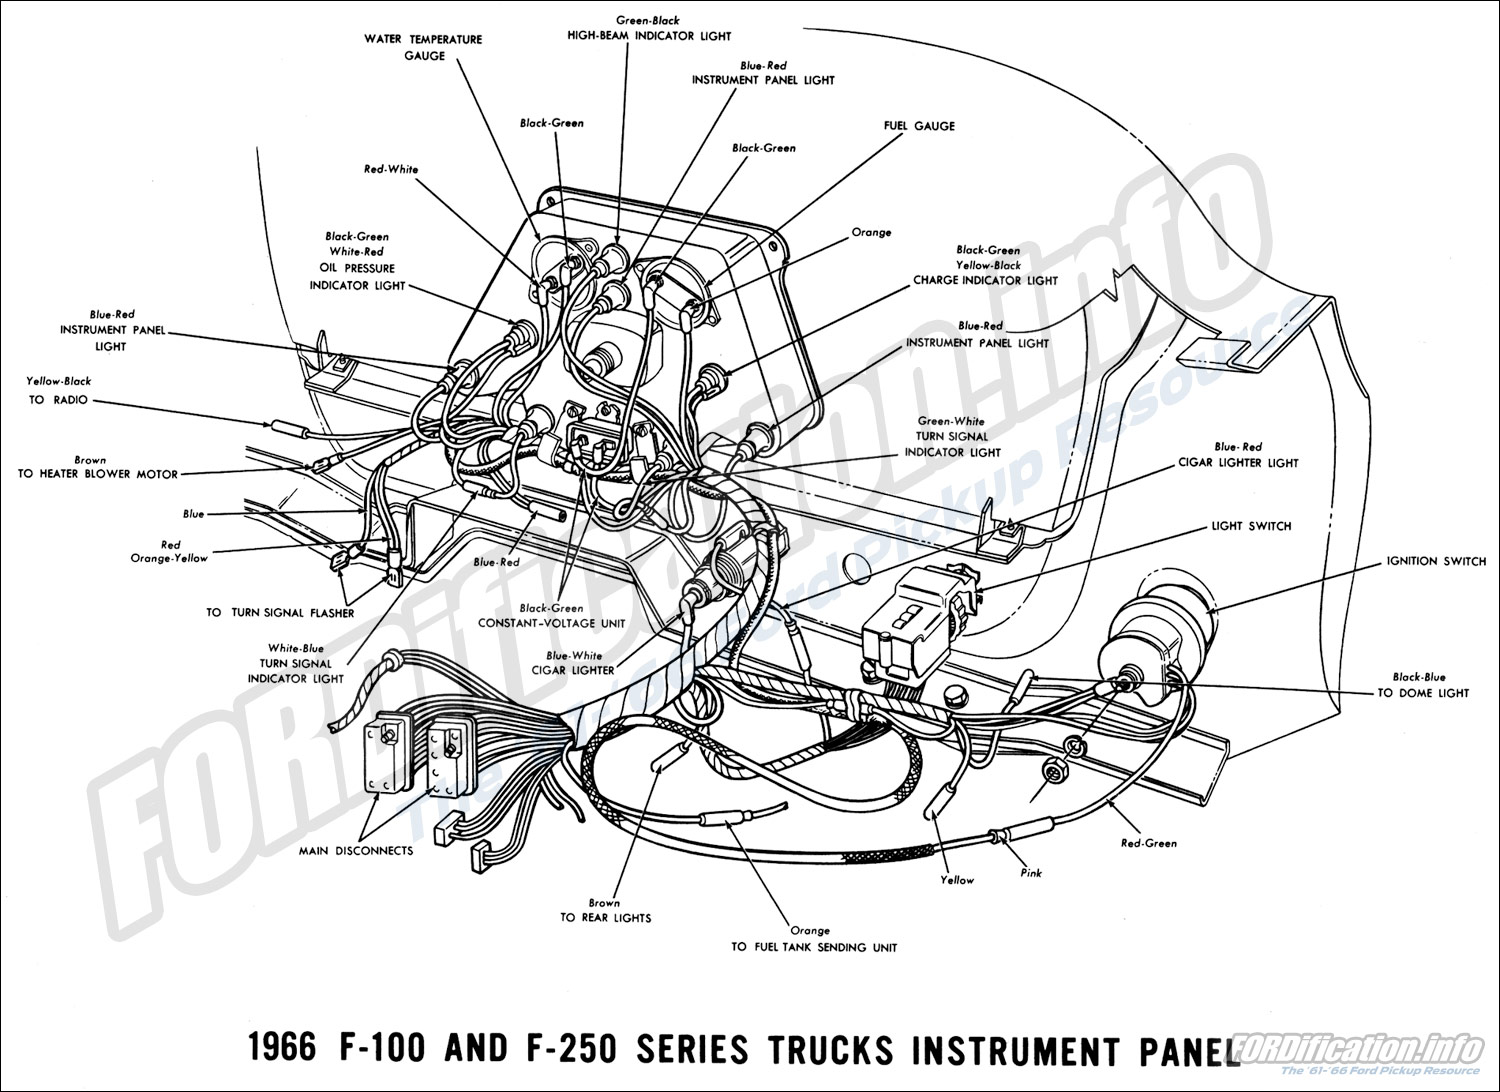 66instrumentpanel 1966 ford truck wiring diagrams fordification info the '61 '66 fordification wiring diagram at gsmportal.co